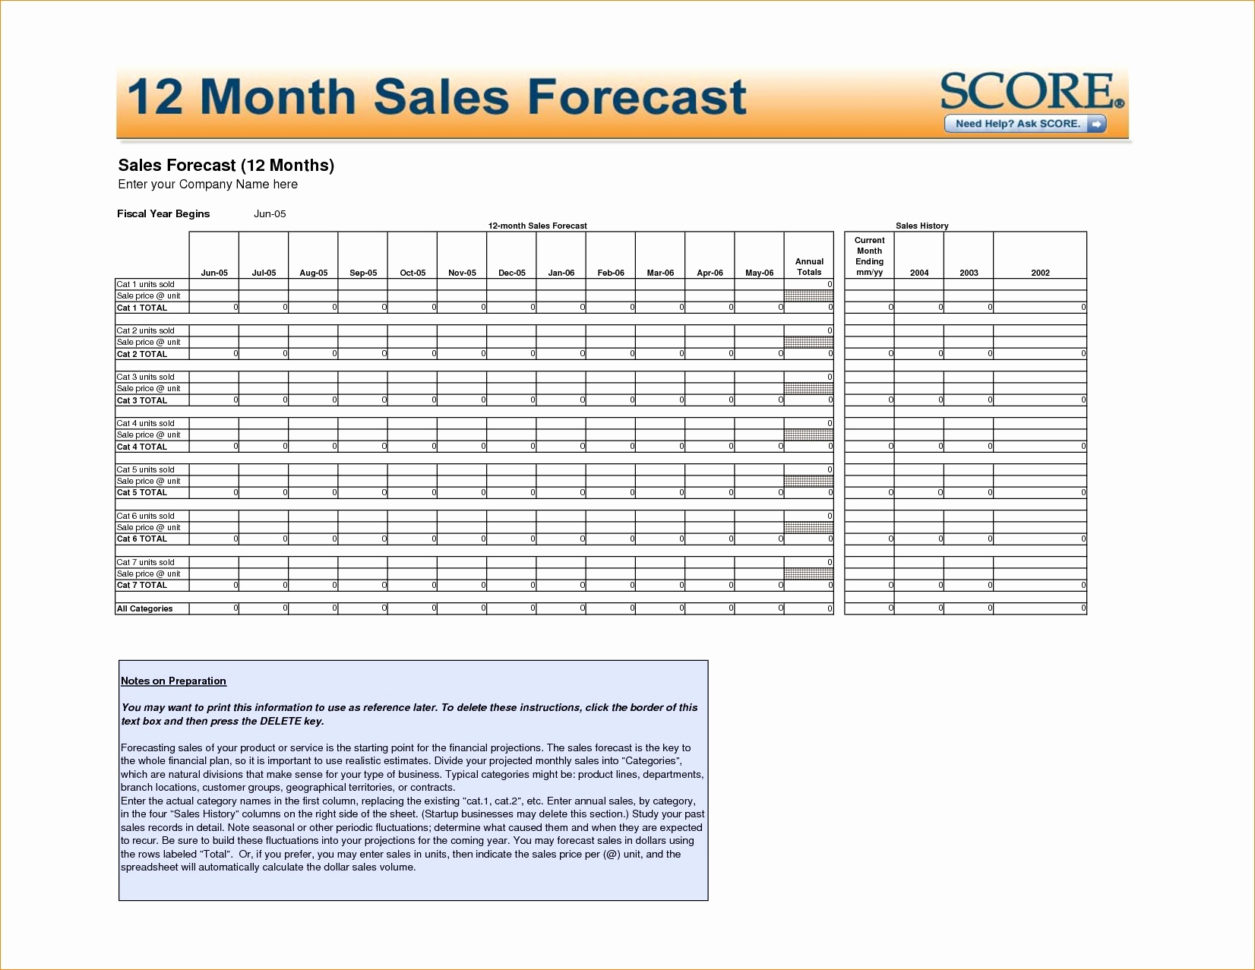 Pro Forma Sales Forecast Template New Pro Forma Sales Forecast To Sales Forecast Template Uk